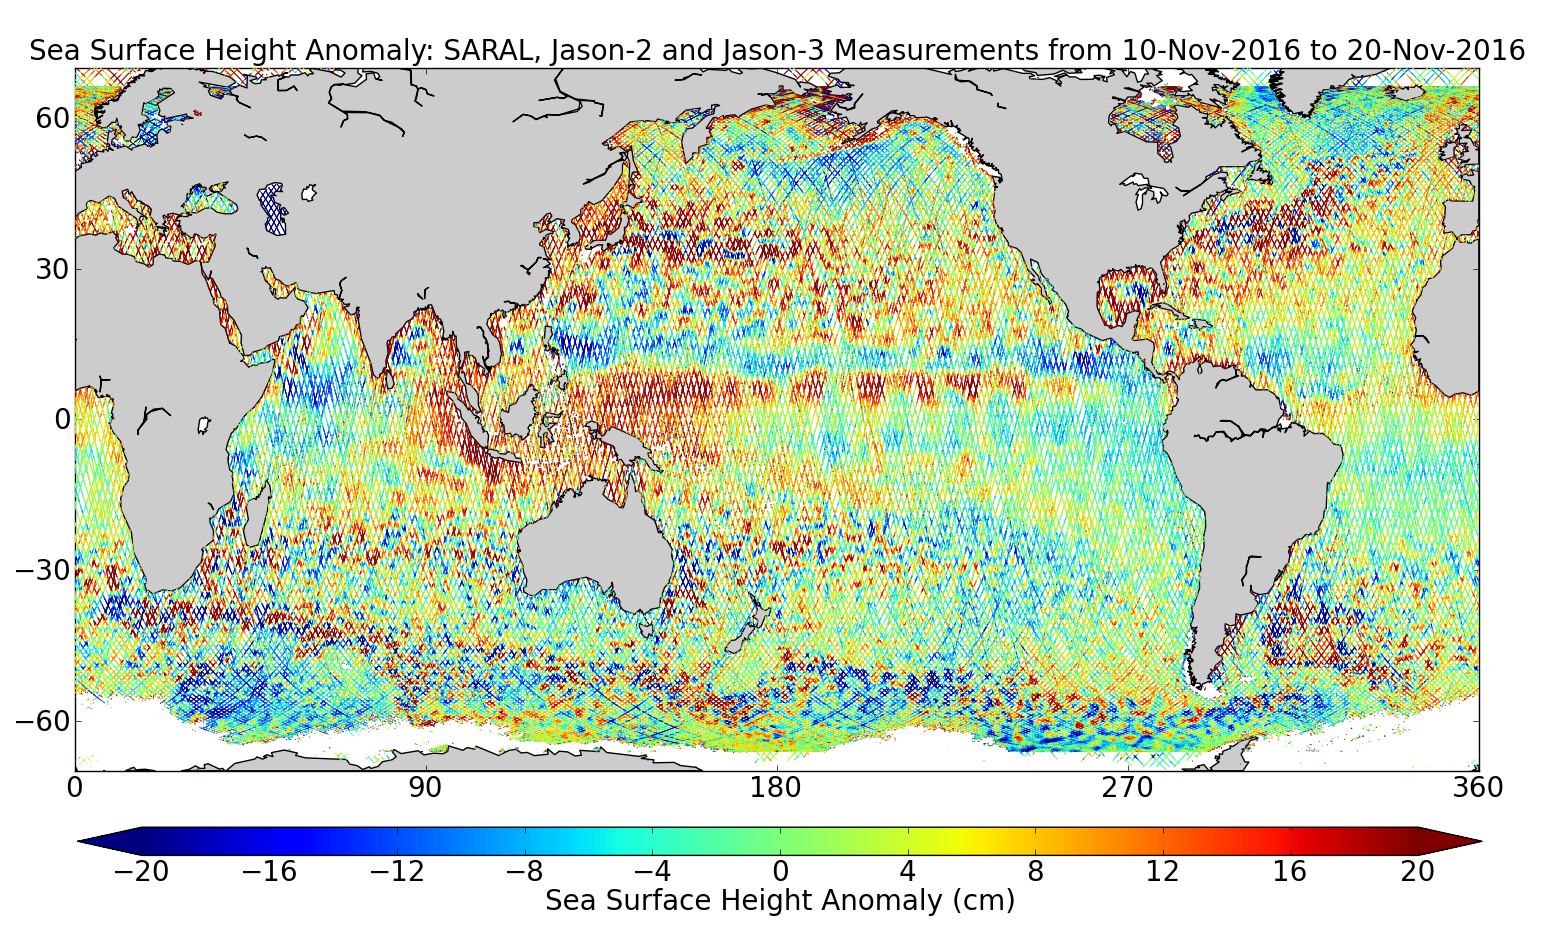 Sea Surface Height Anomaly: SARAL, Jason-2 and Jason-3 Measurements from 10-Nov-2016 to 20-Nov-2016